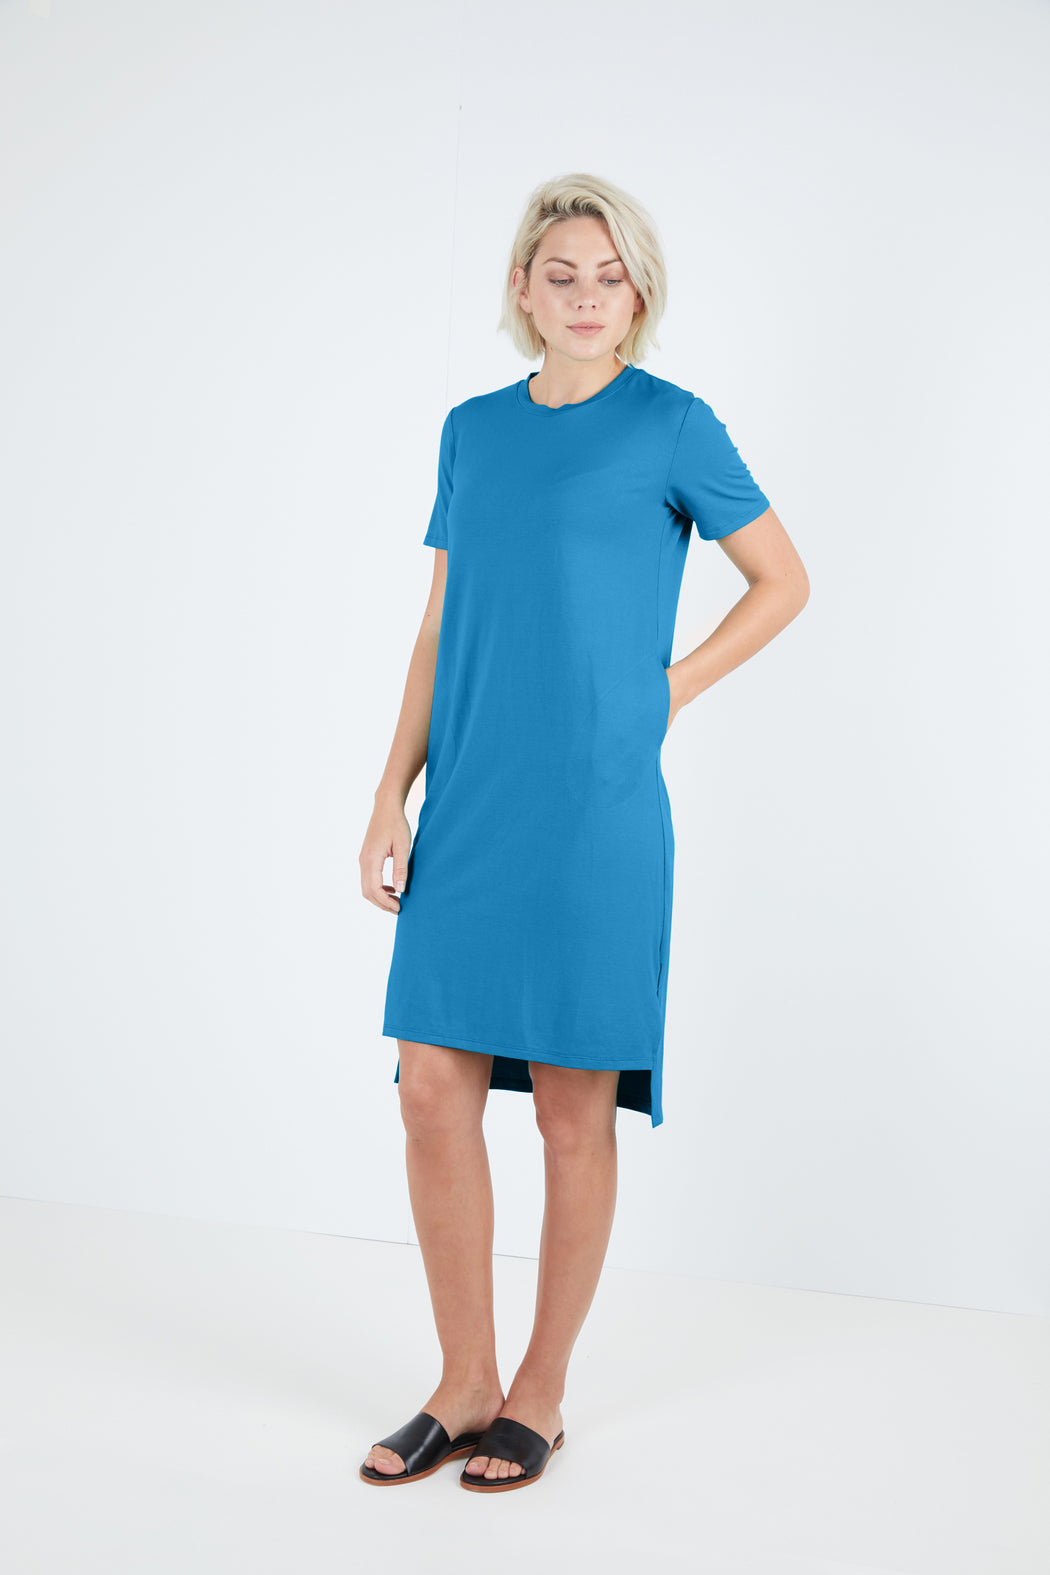 Crew Neck Dress With Sleeves And Pockets - Sale